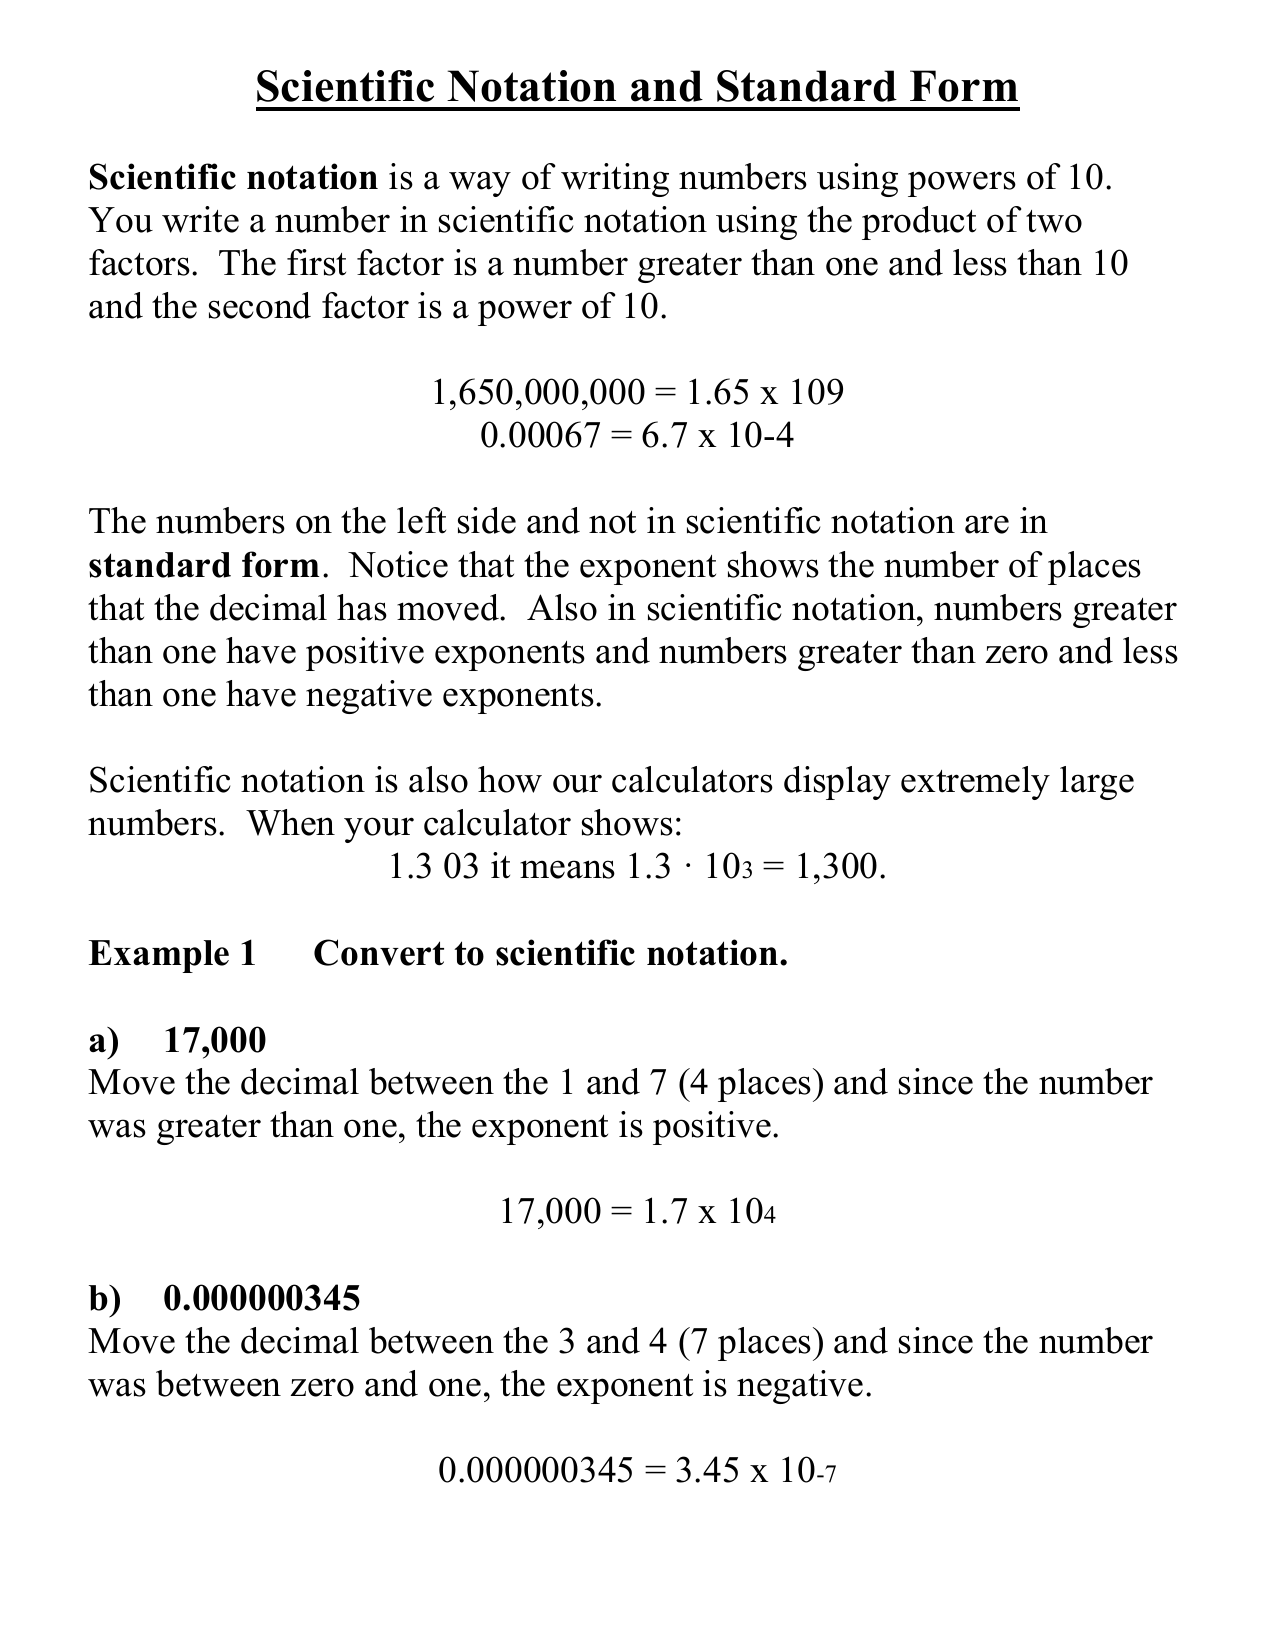 standard form negative exponents  Scientific Notation and Standard Form